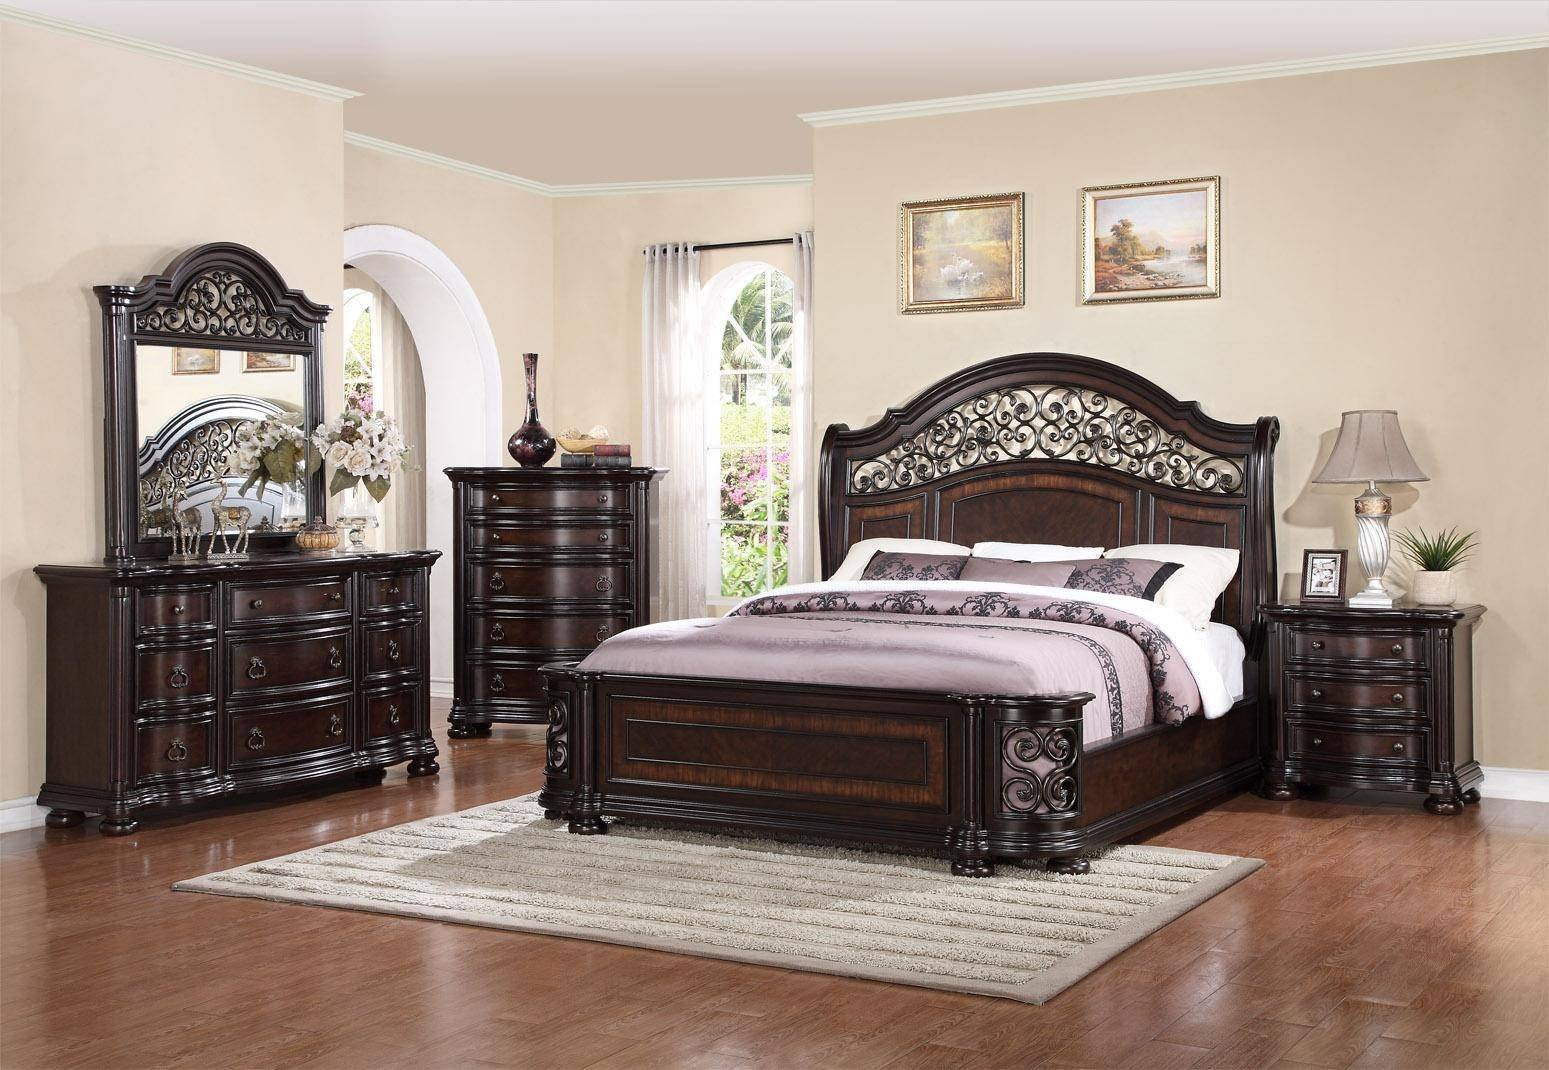 King Size Bedroom Set Cheap Lovely Mcferran B366 Allison Espresso Finish solid Hardwood